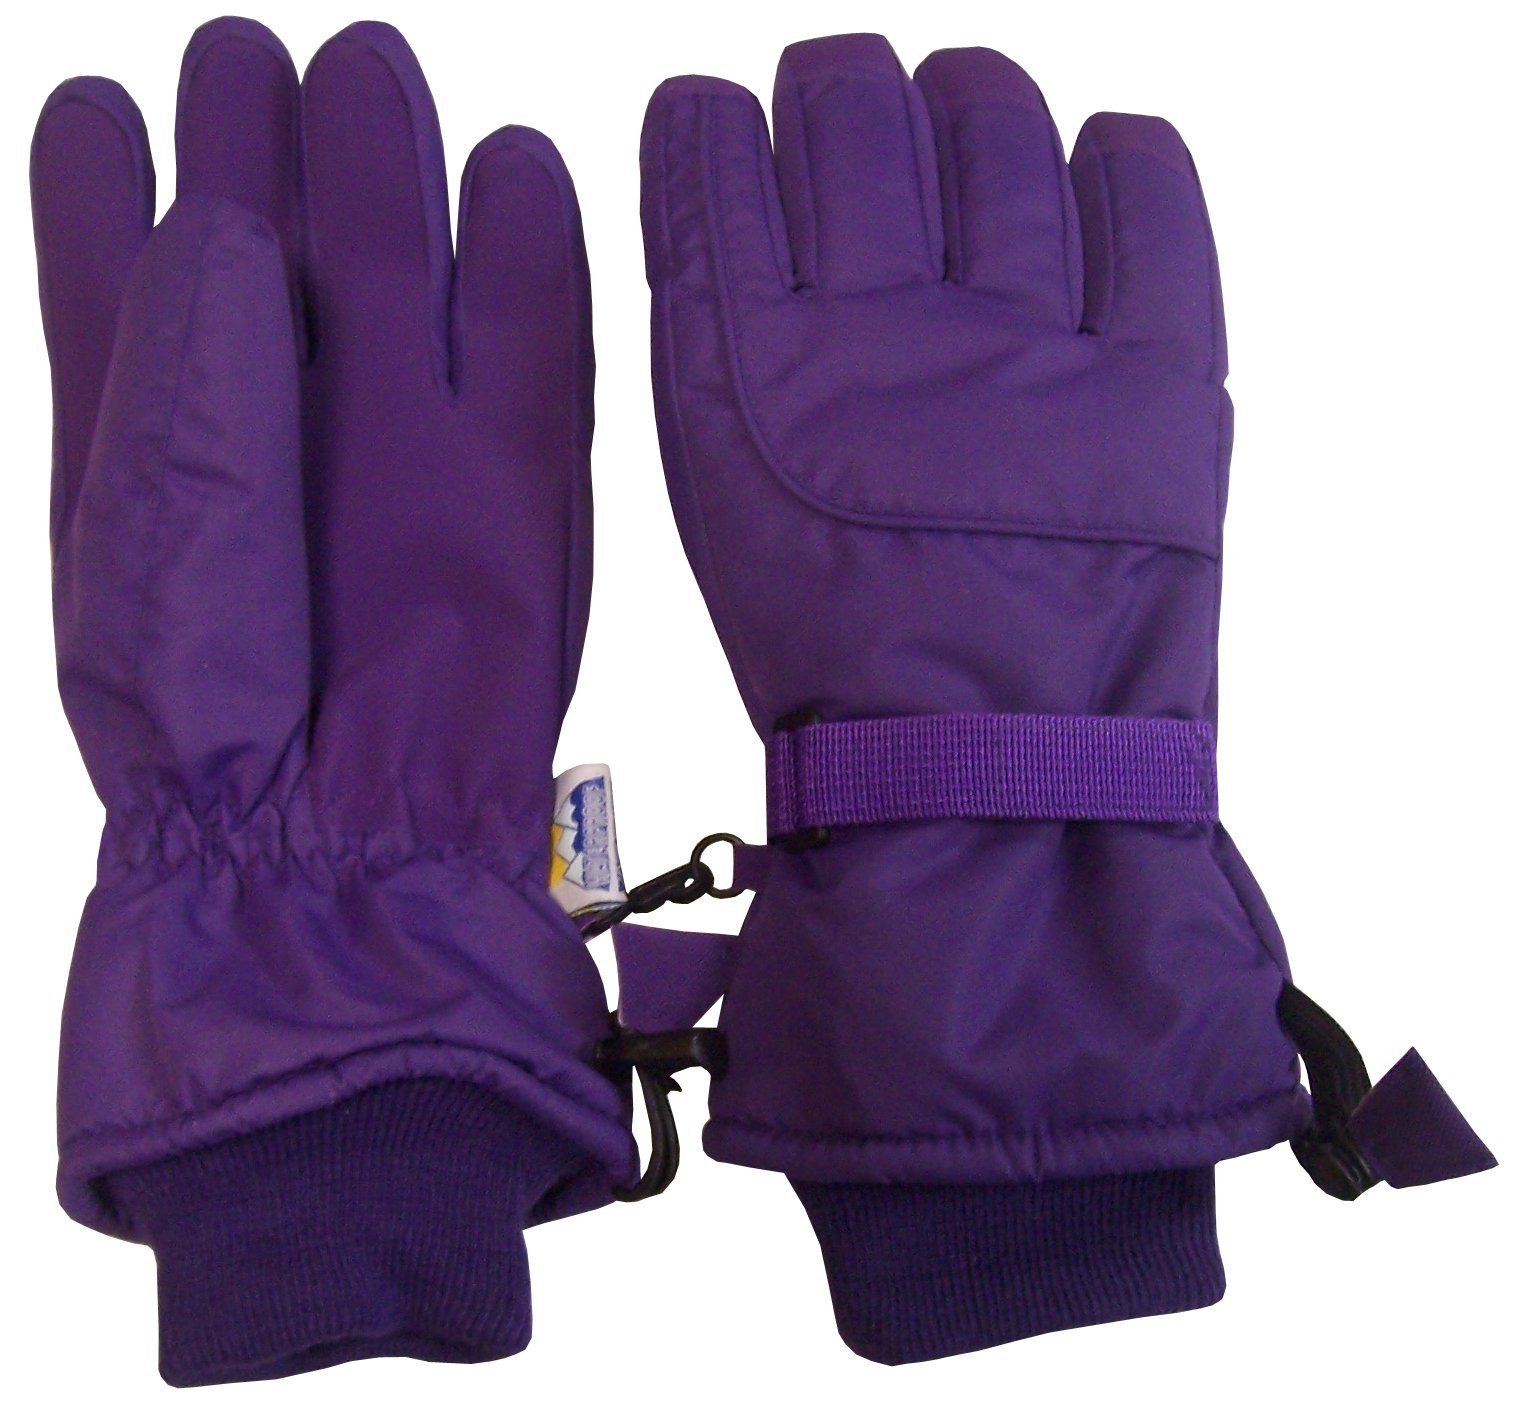 N'Ice Caps Kids Extreme Cold Weather 80 Gram Thinsulate Ski Gloves (5-6yrs, Dark Purple)